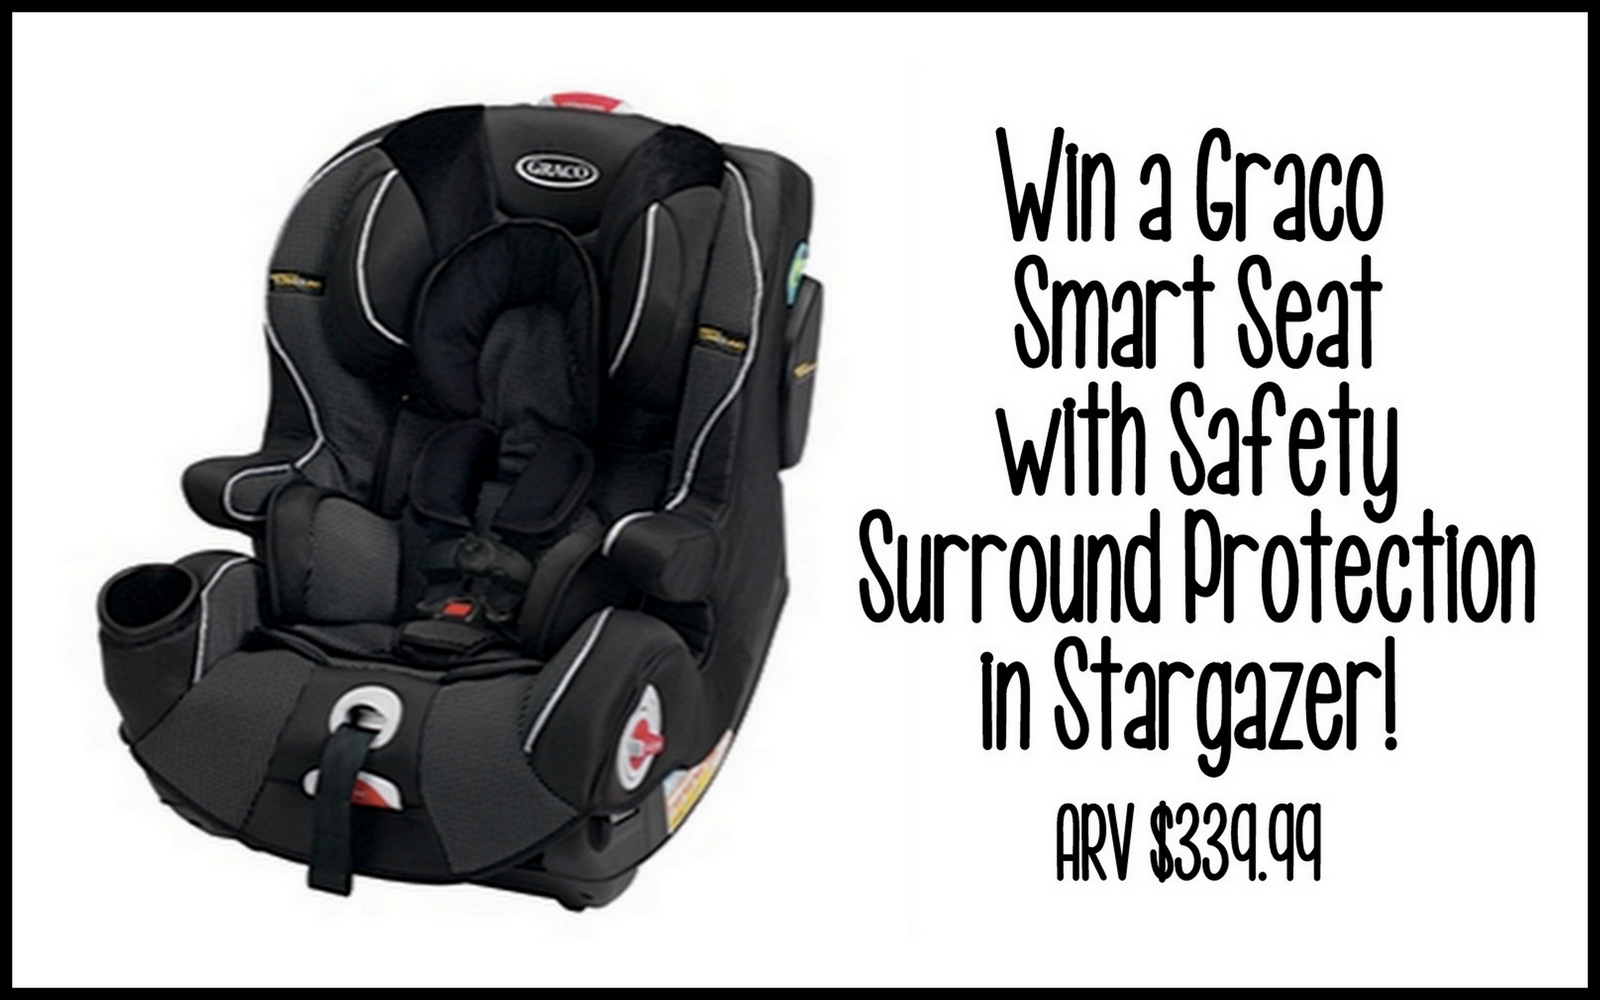 graco smart seat with safety surround protection car seat giveaway miss frugal mommy. Black Bedroom Furniture Sets. Home Design Ideas